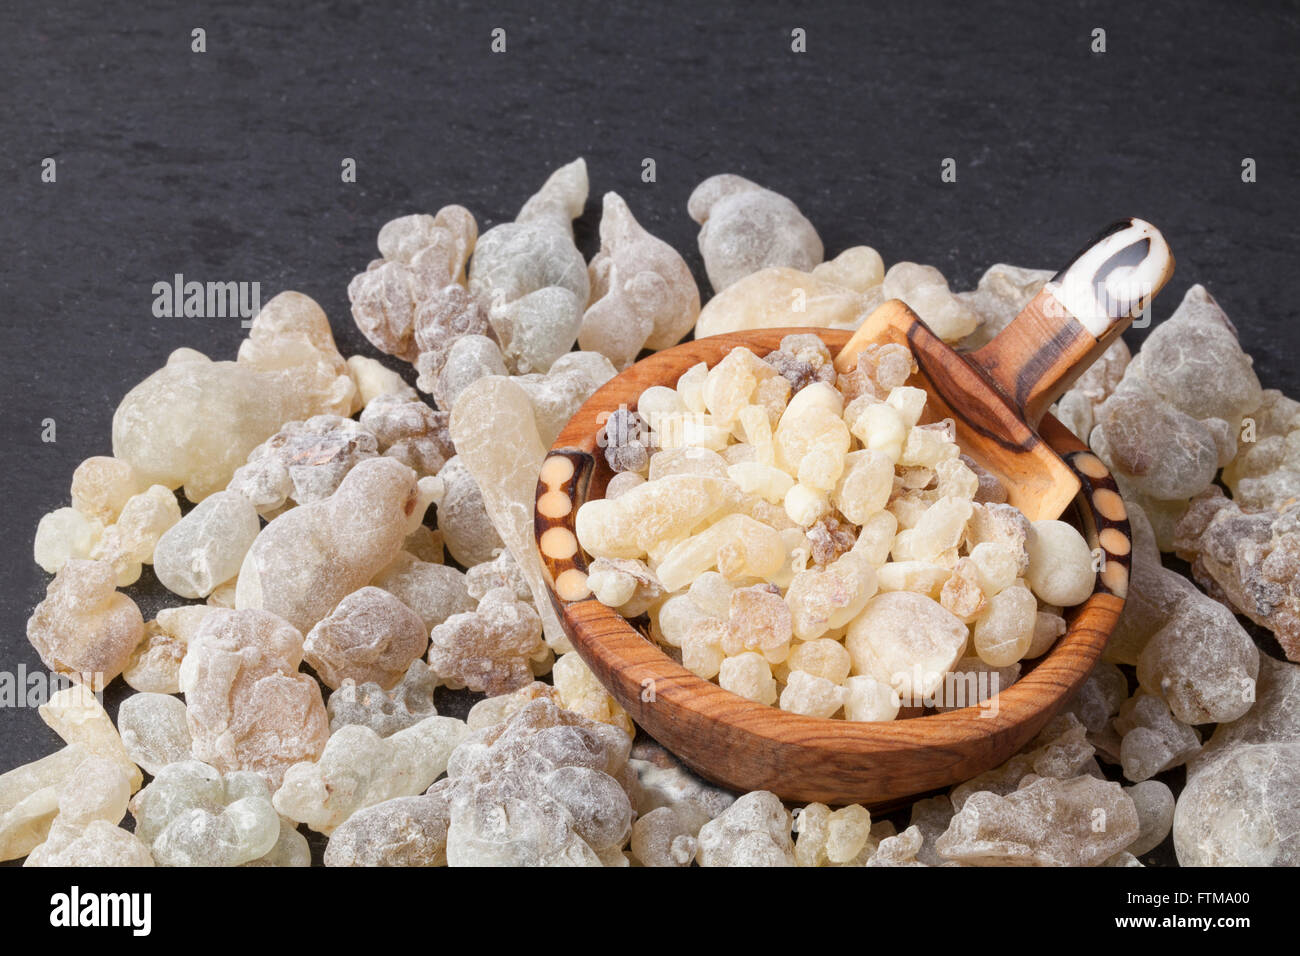 Frankincense is an aromatic resin, used for religious rites, incense and perfumes. - Stock Image